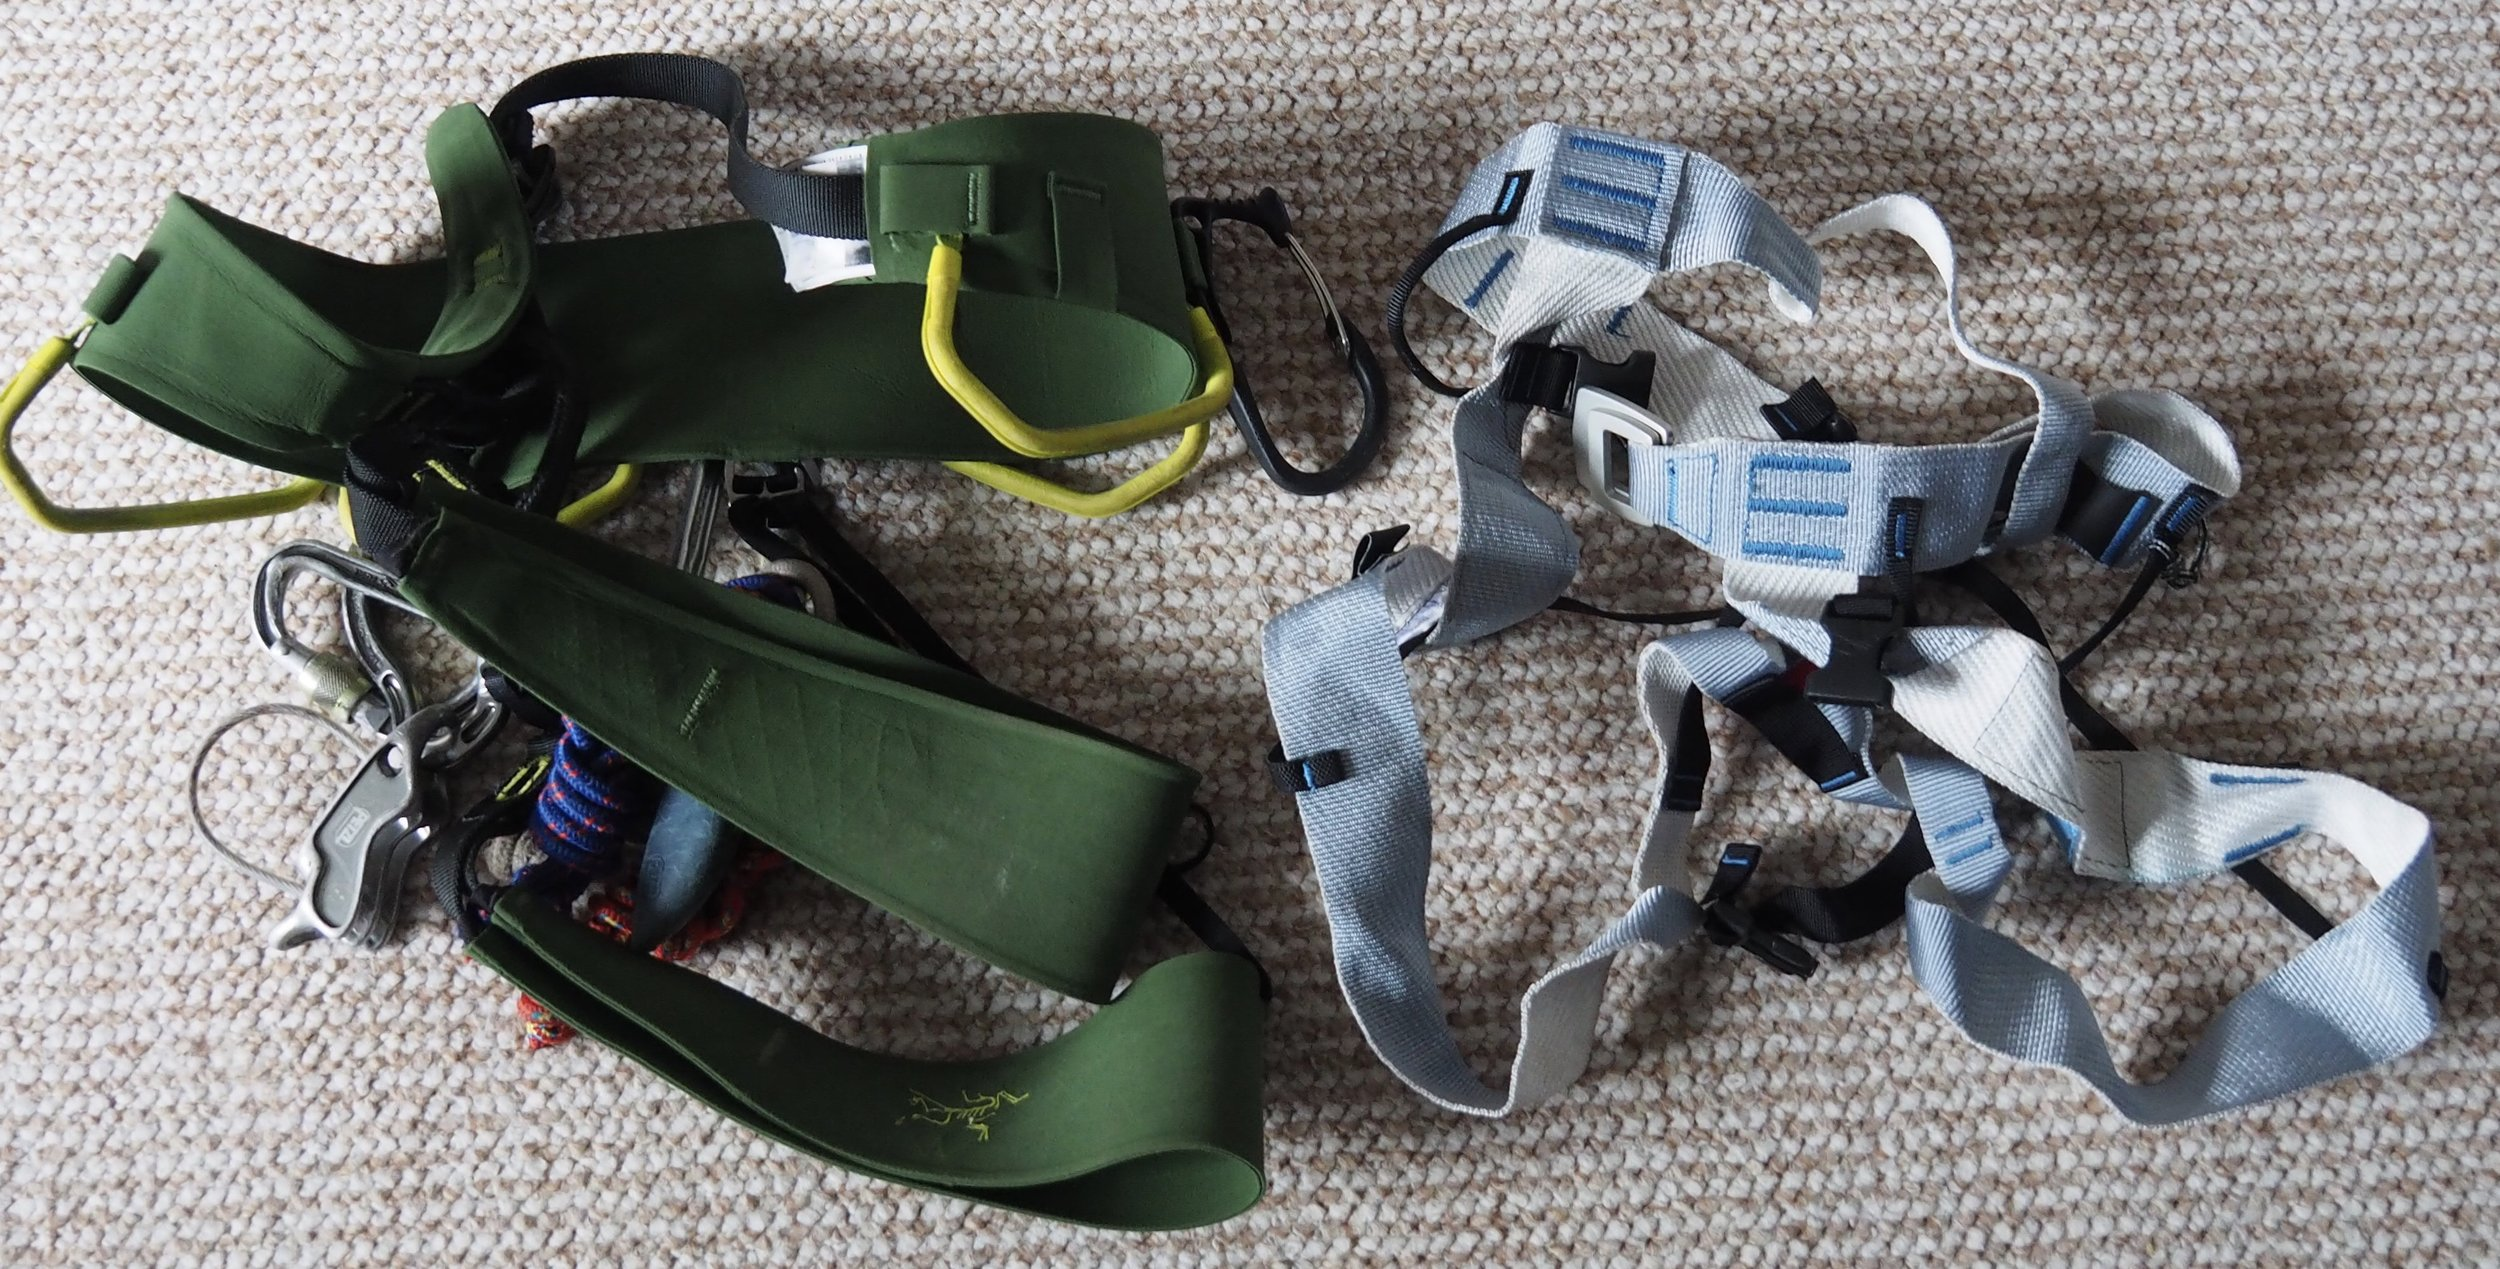 Traditional Harness and light weight alpine harness, note the Ice axe clipper on the green harness, really useful feature.